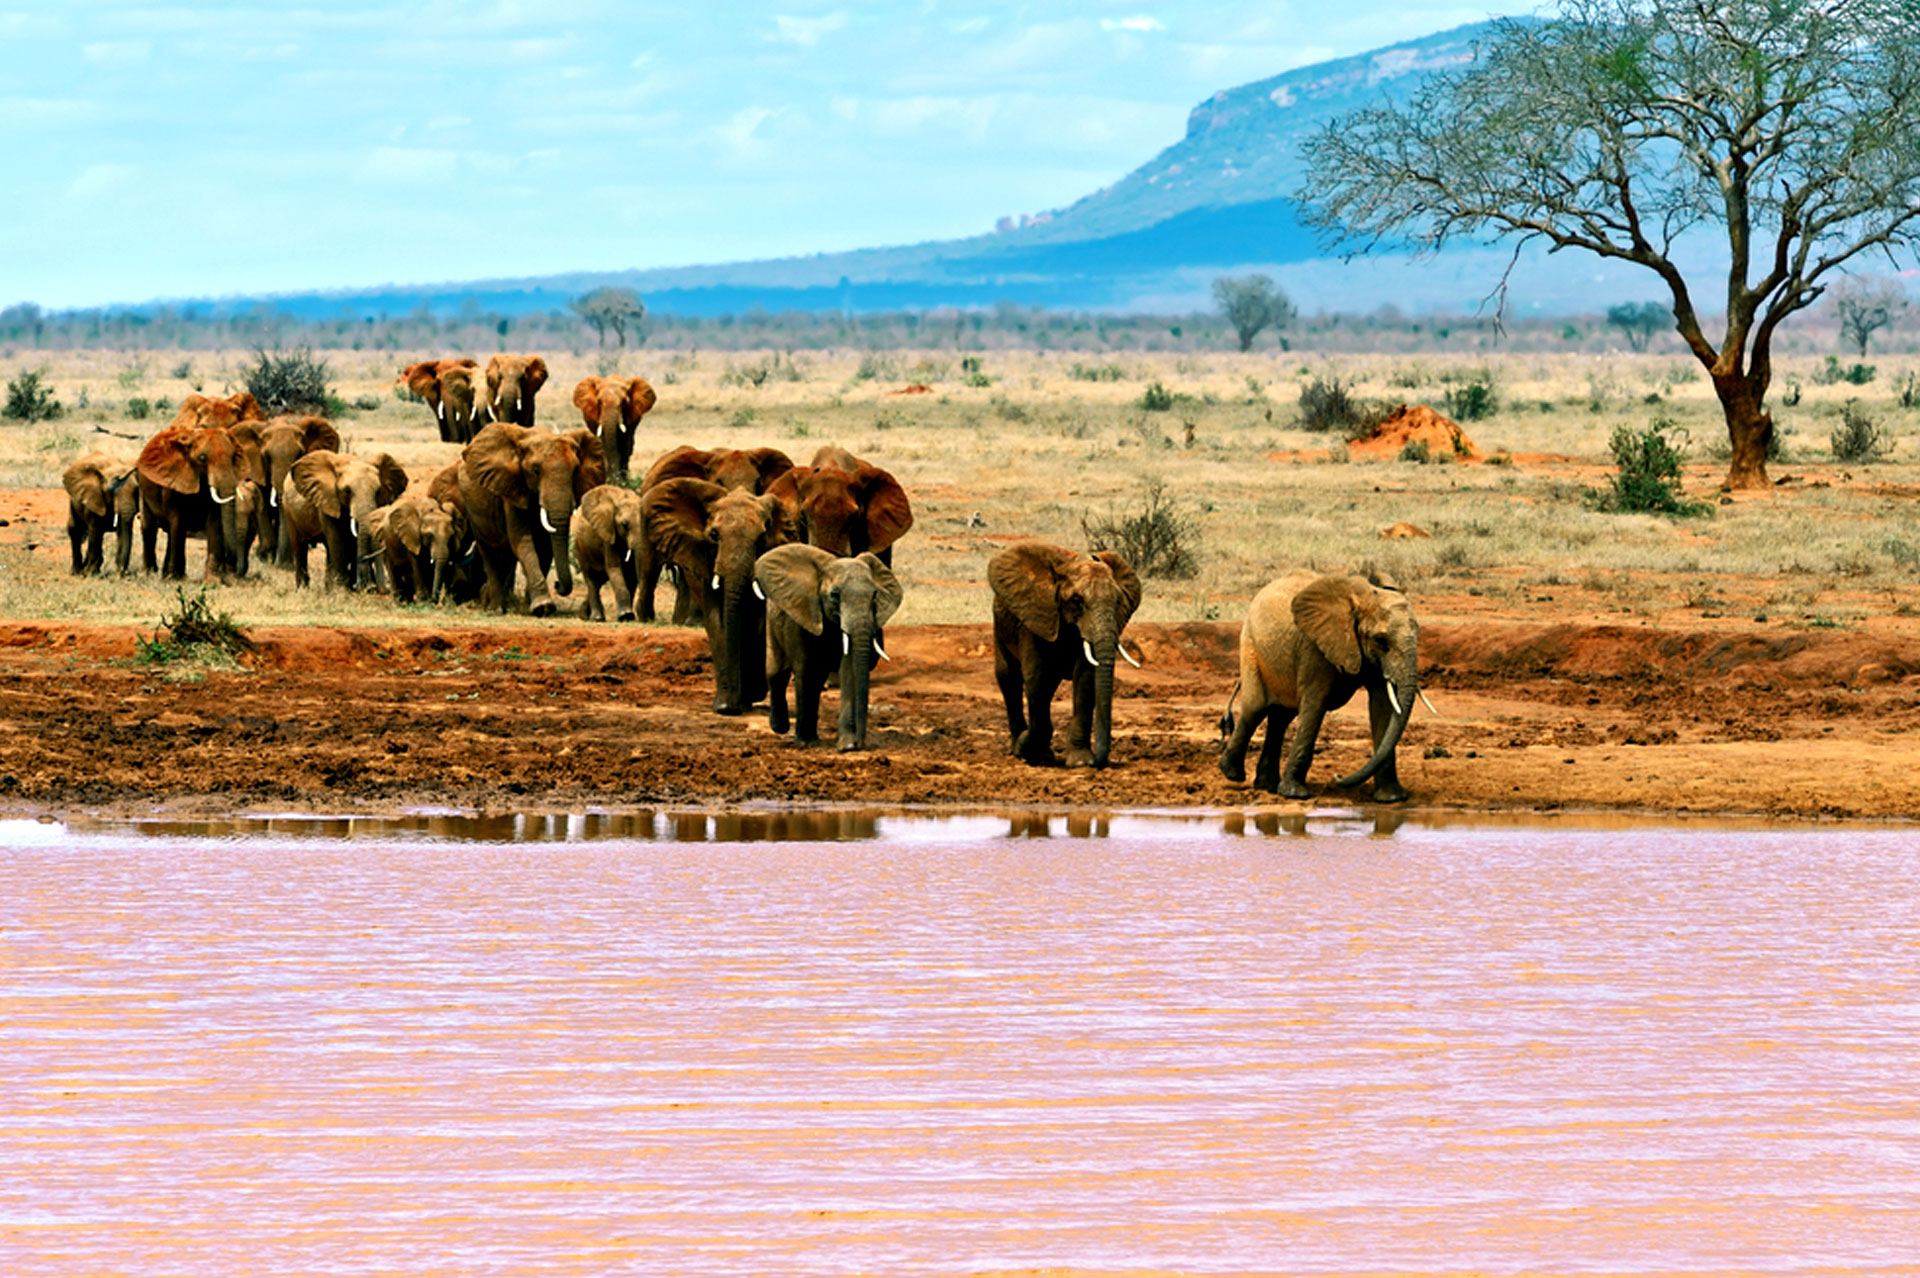 Diani_travel_center_National_Parks_in_Kenya_Tsavo_East_National_park_image_0